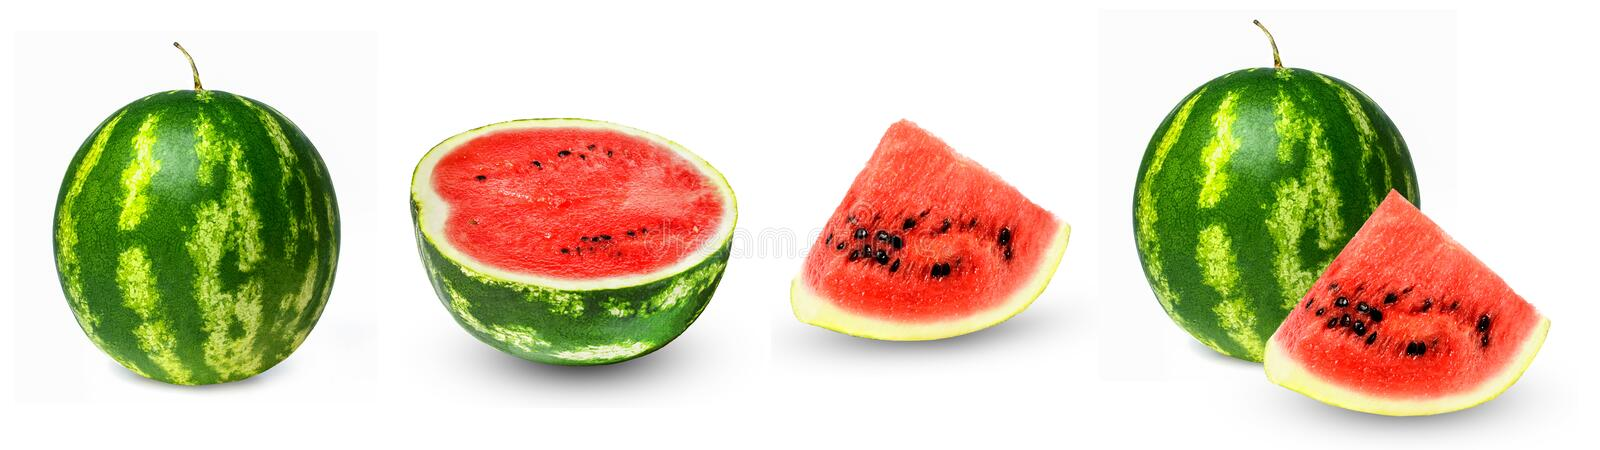 Watermelon set. Whole, half, lobule. Isolation on a white background. Side view. Bright saturated colors and good texture royalty free stock photography